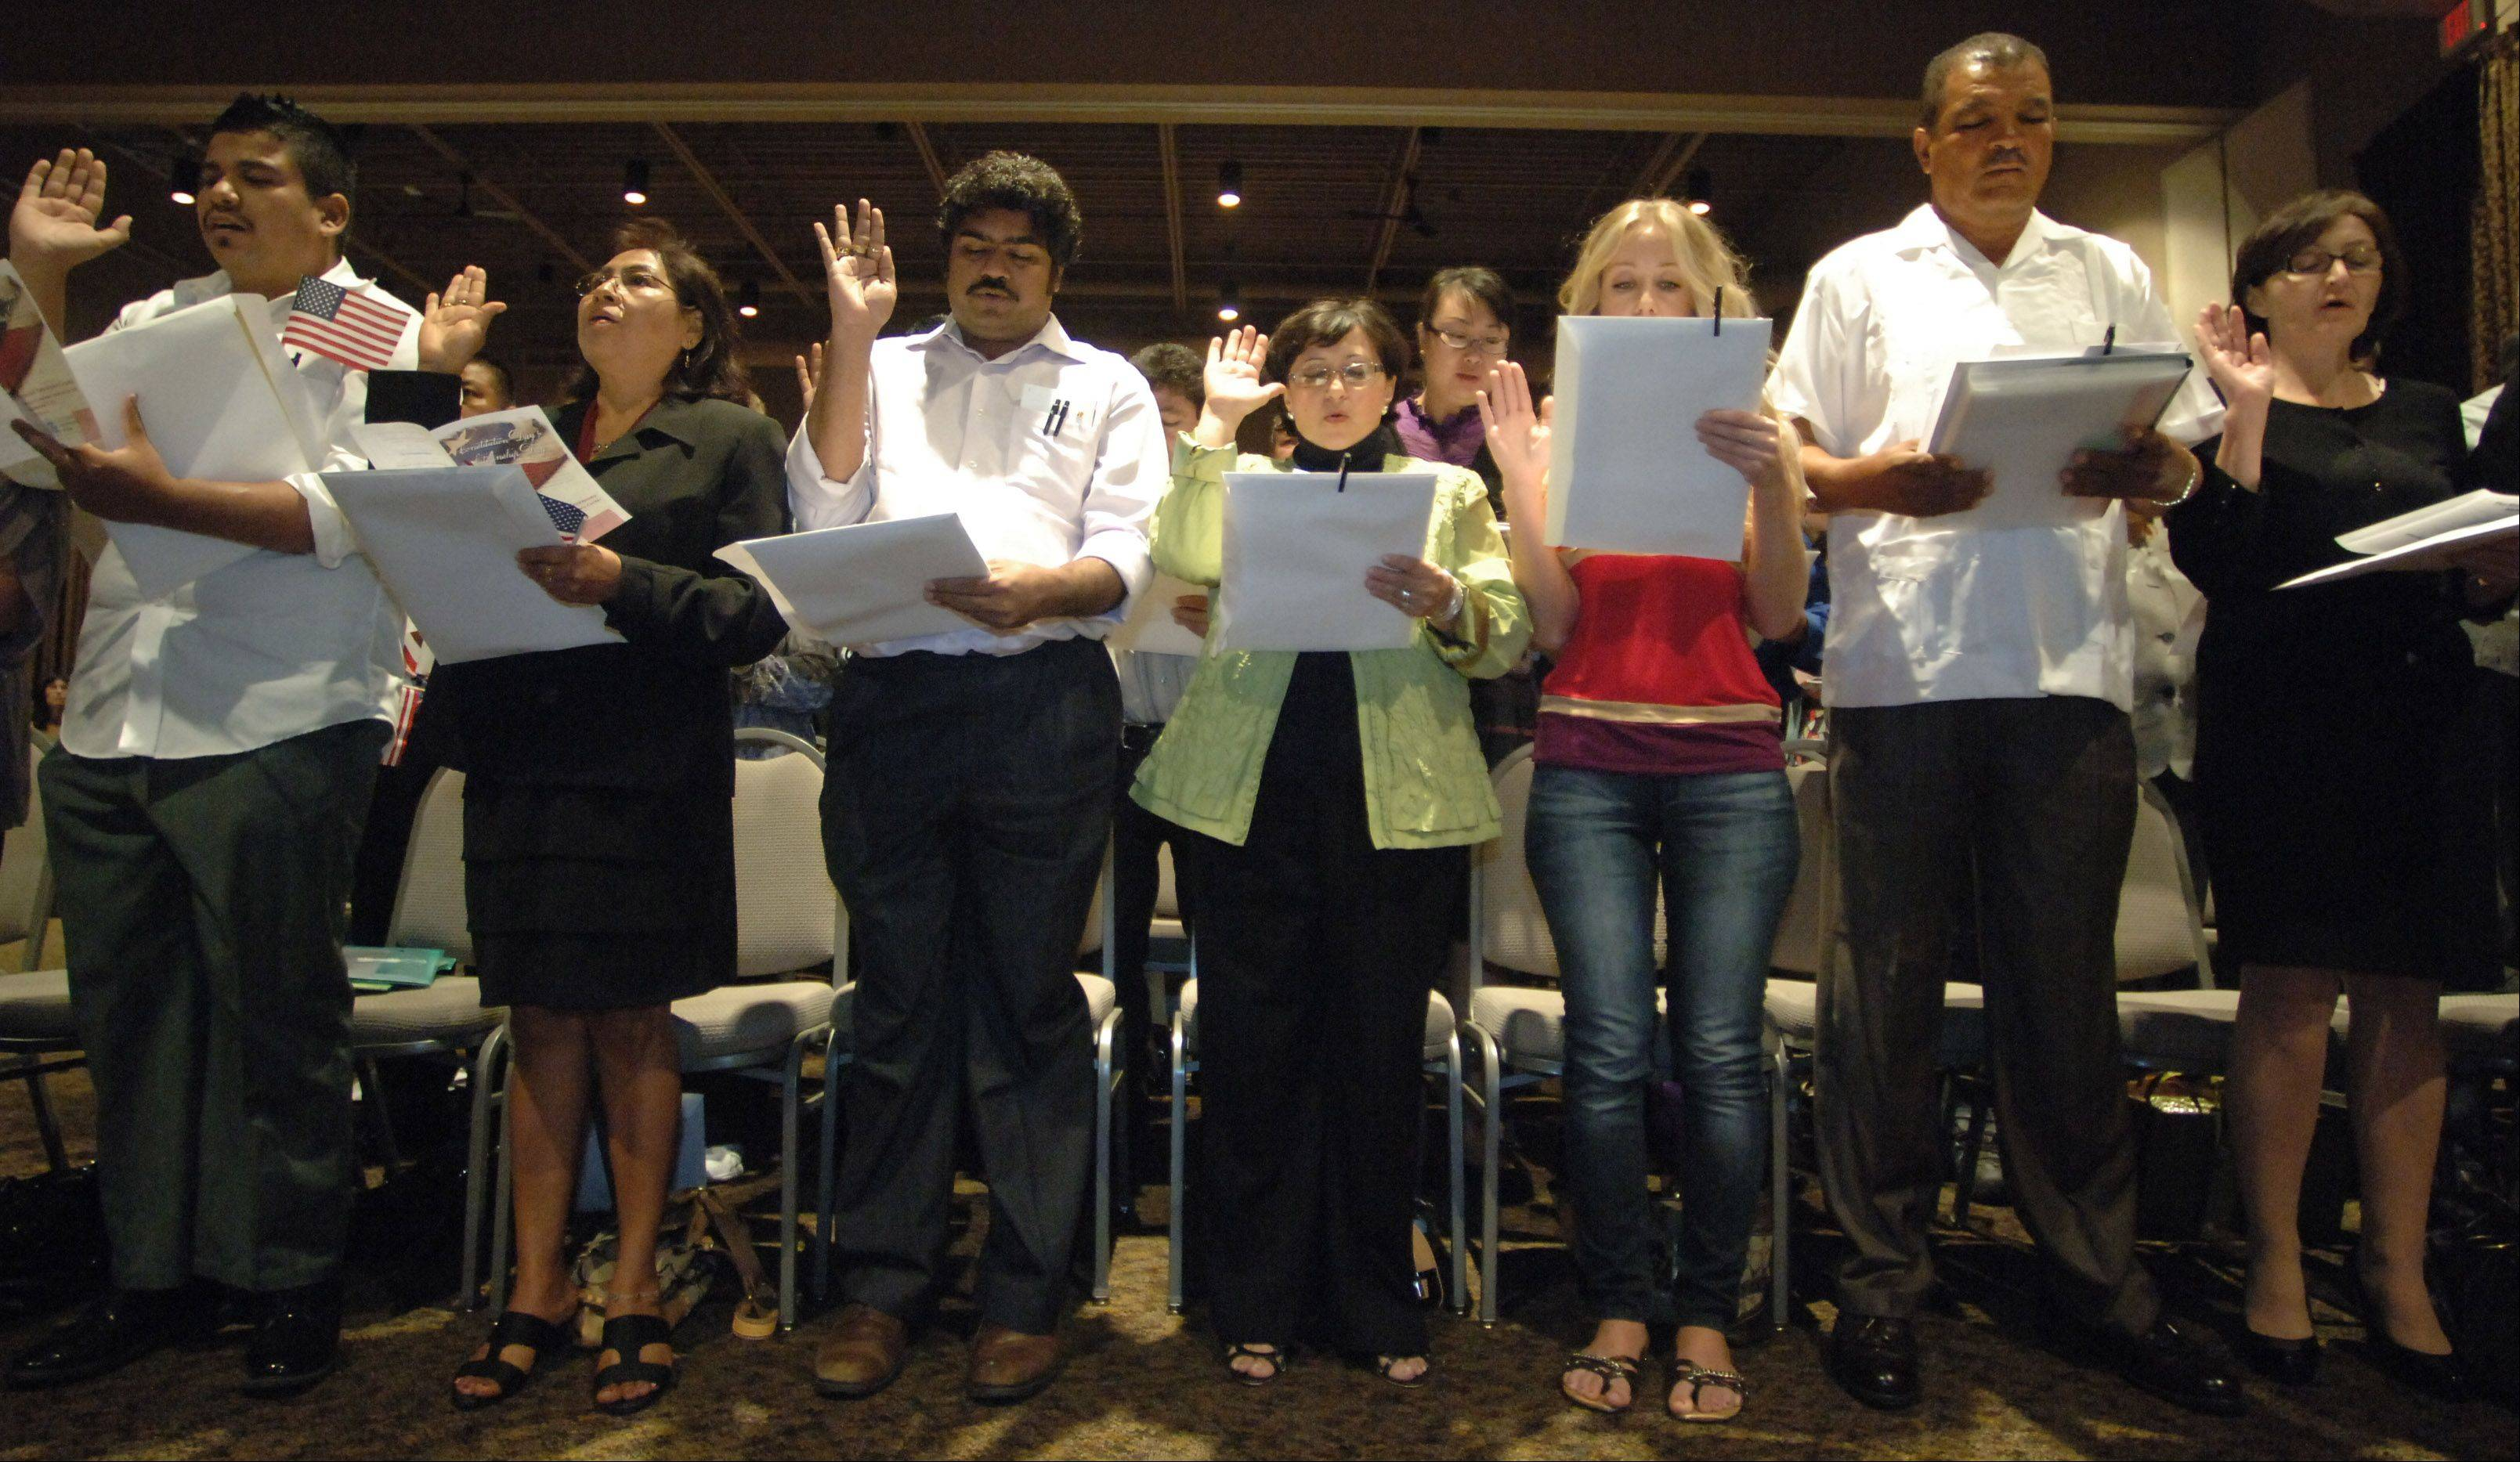 About 100 people became United States citizens Monday during a naturalization ceremony at the Round Lake Beach Cultural & Civic Center. The new citizens hail from 33 countries.